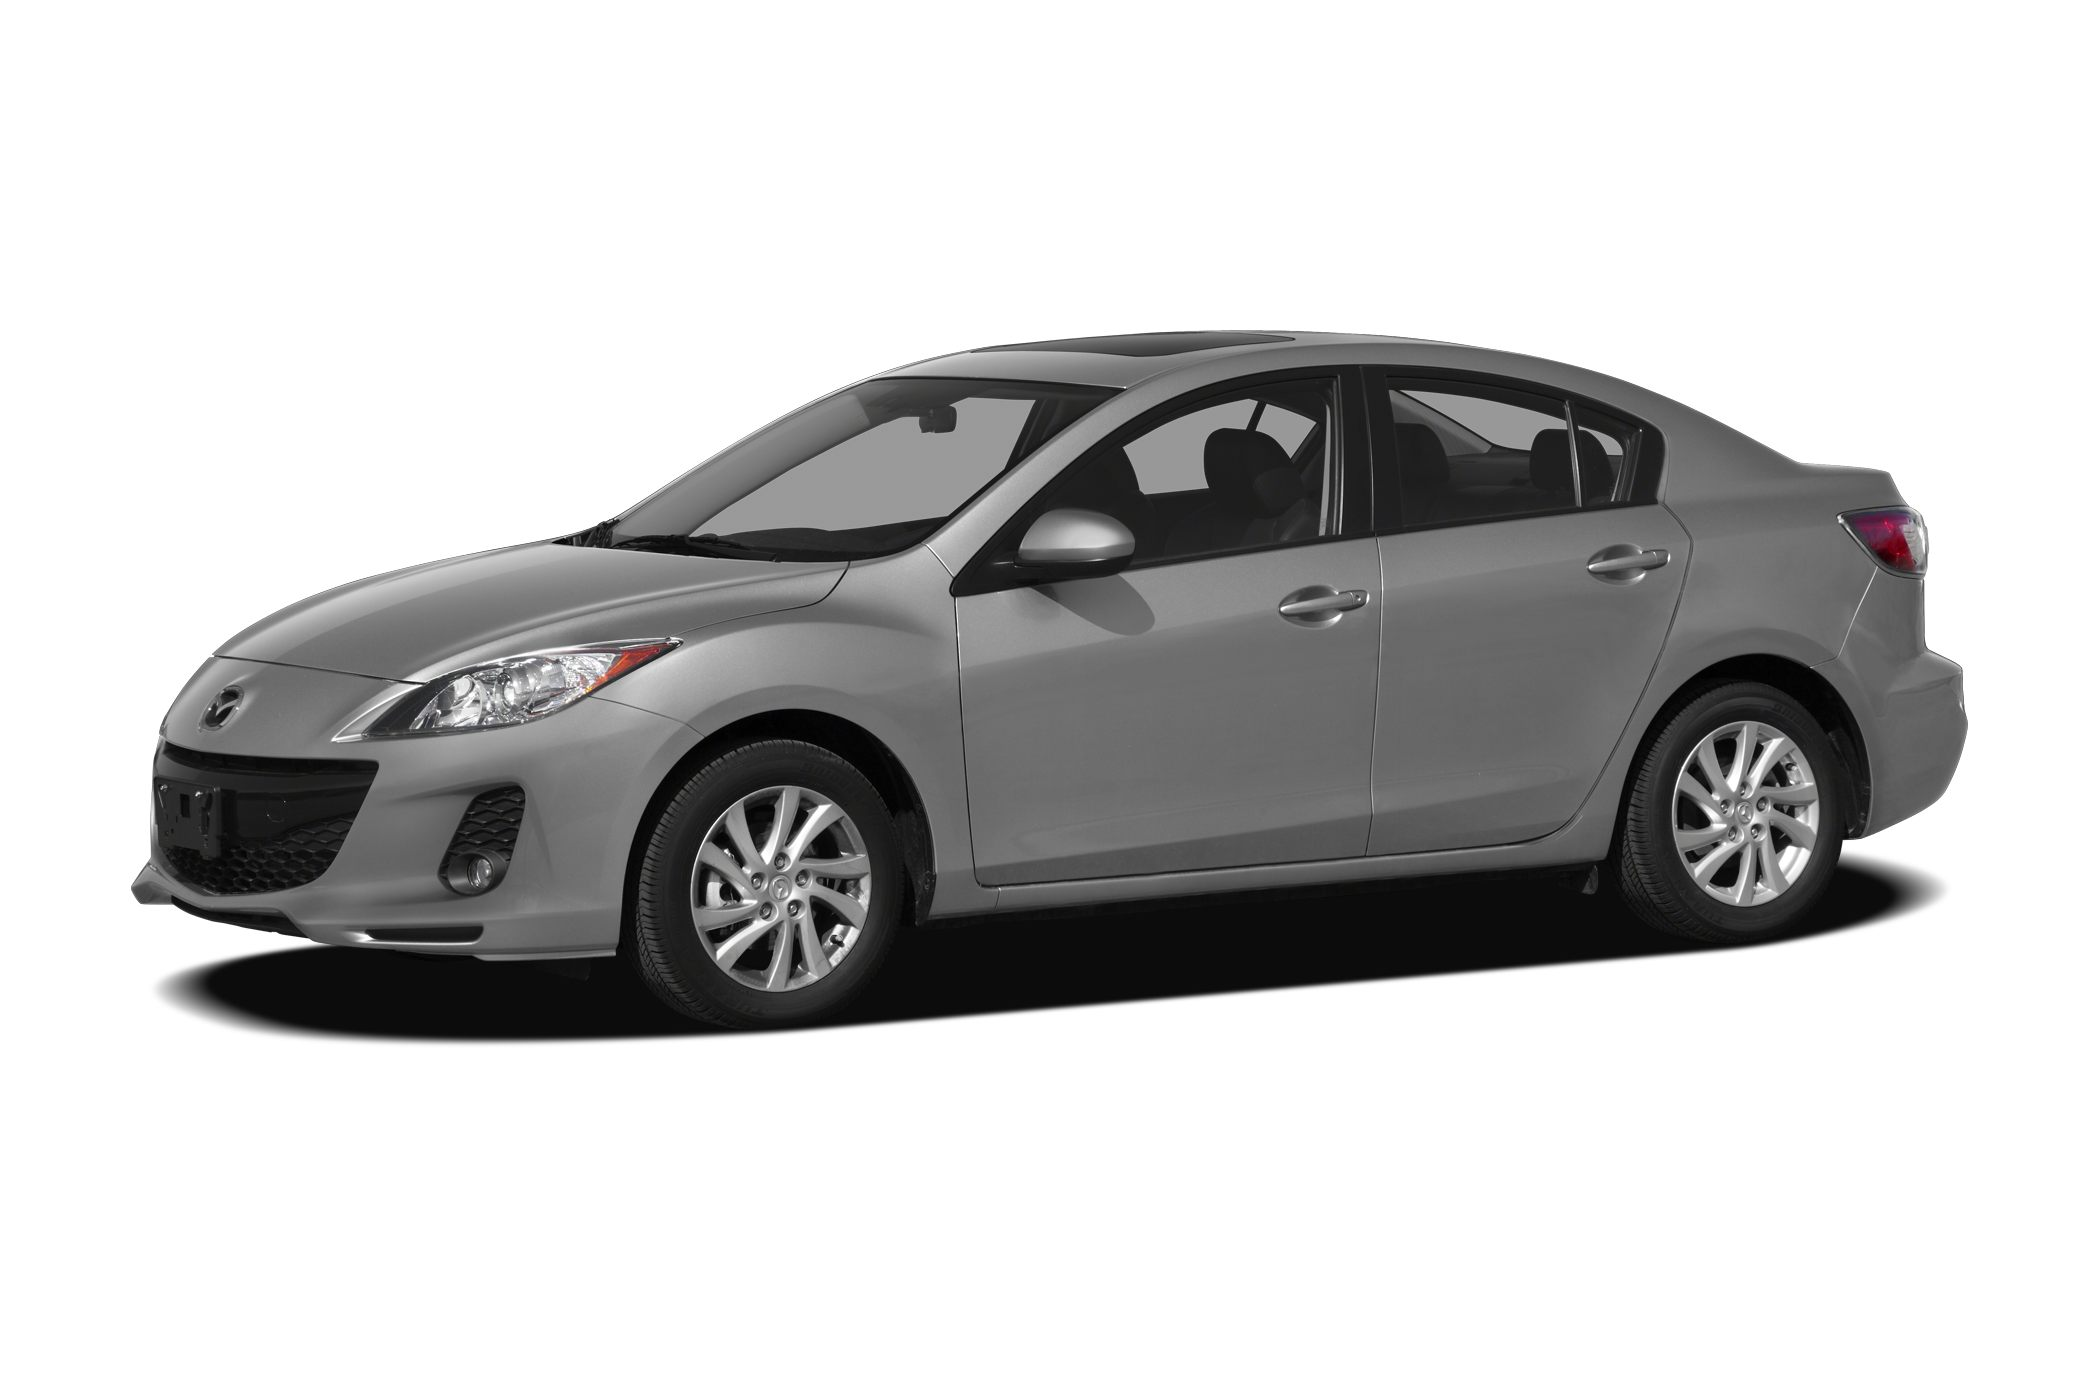 2012 Mazda Mazda3 I Grand Touring Sedan for sale in Scranton for $15,995 with 27,472 miles